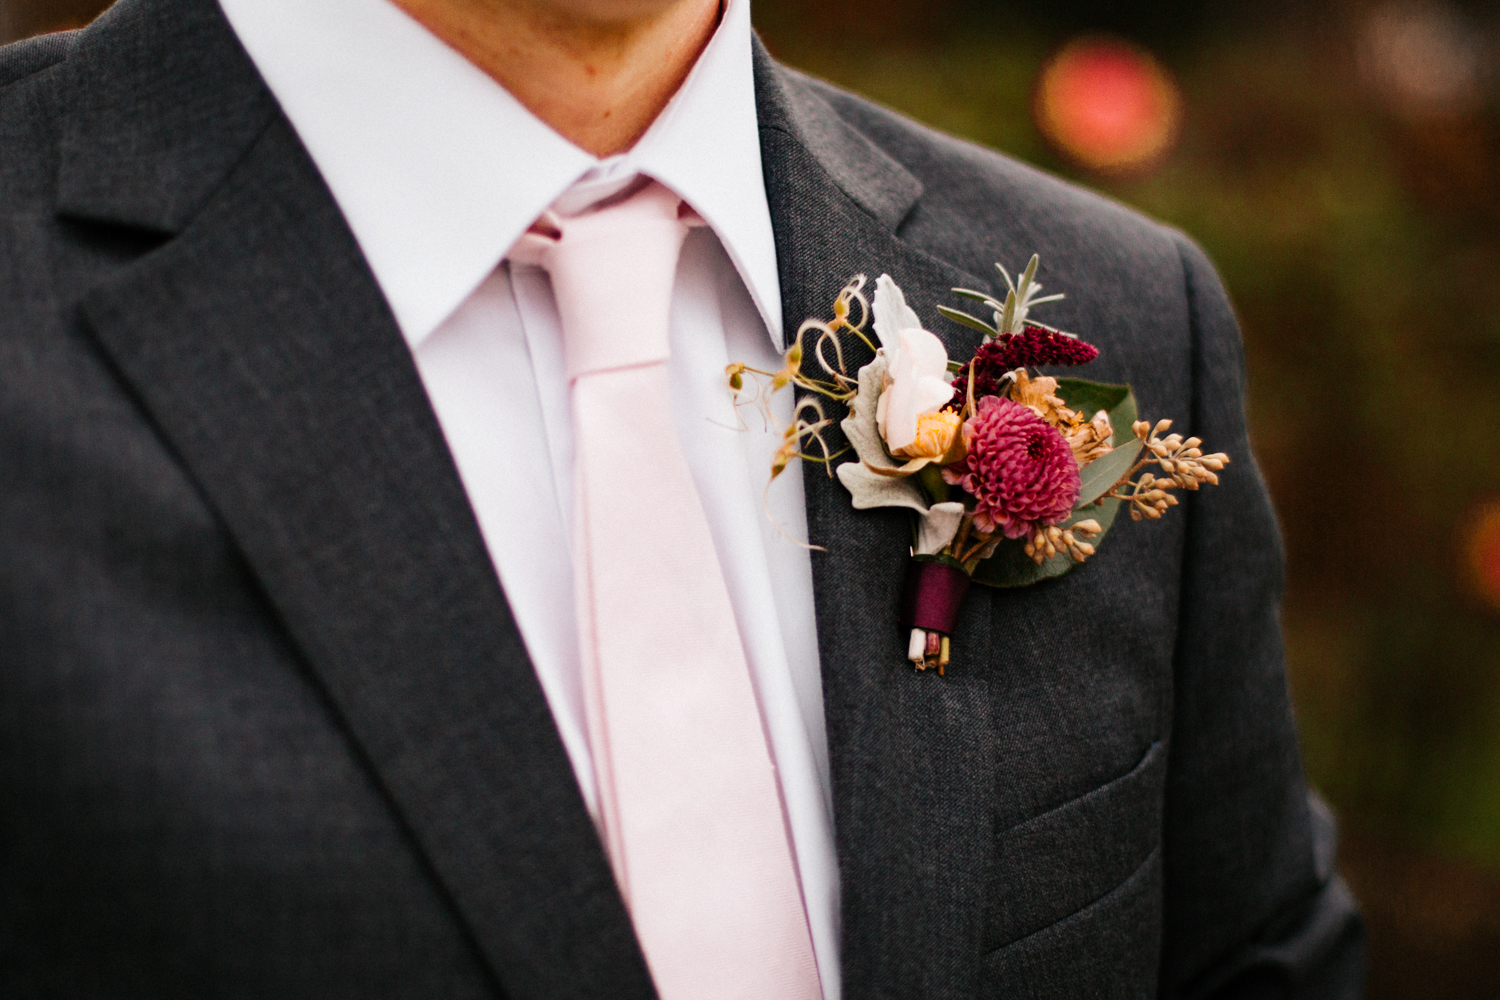 bouttonneire-purple-autumn-wedding-boston-new-england-rhode-island-massachusetts-elizabeth-park.jpg